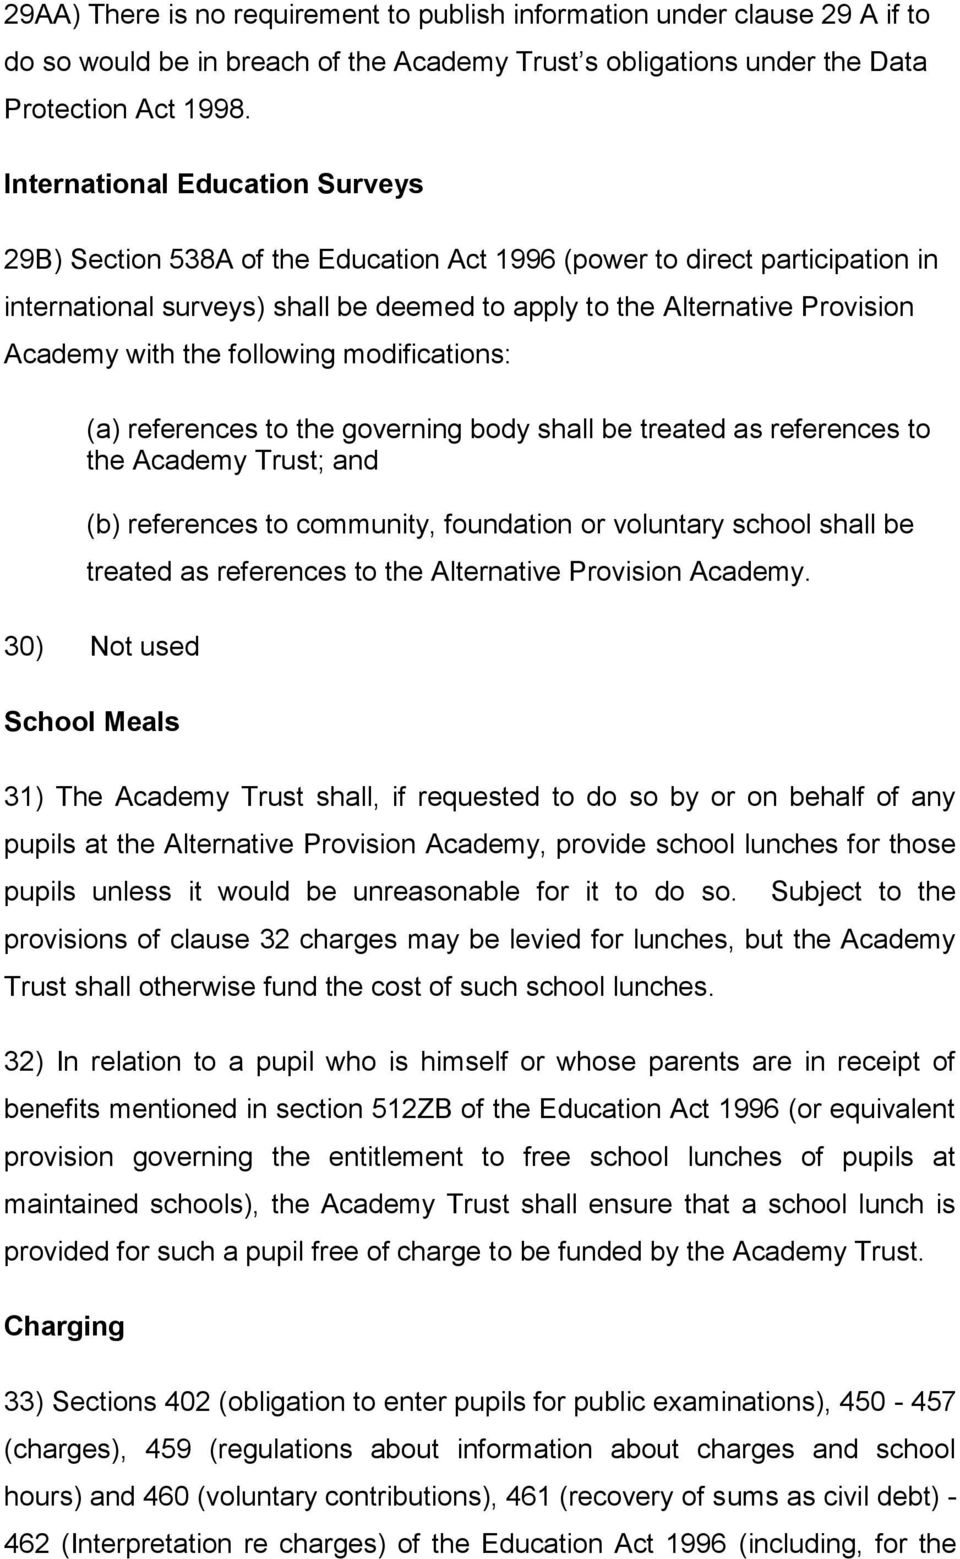 the following modifications: (a) references to the governing body shall be treated as references to the Academy Trust; and (b) references to community, foundation or voluntary school shall be treated